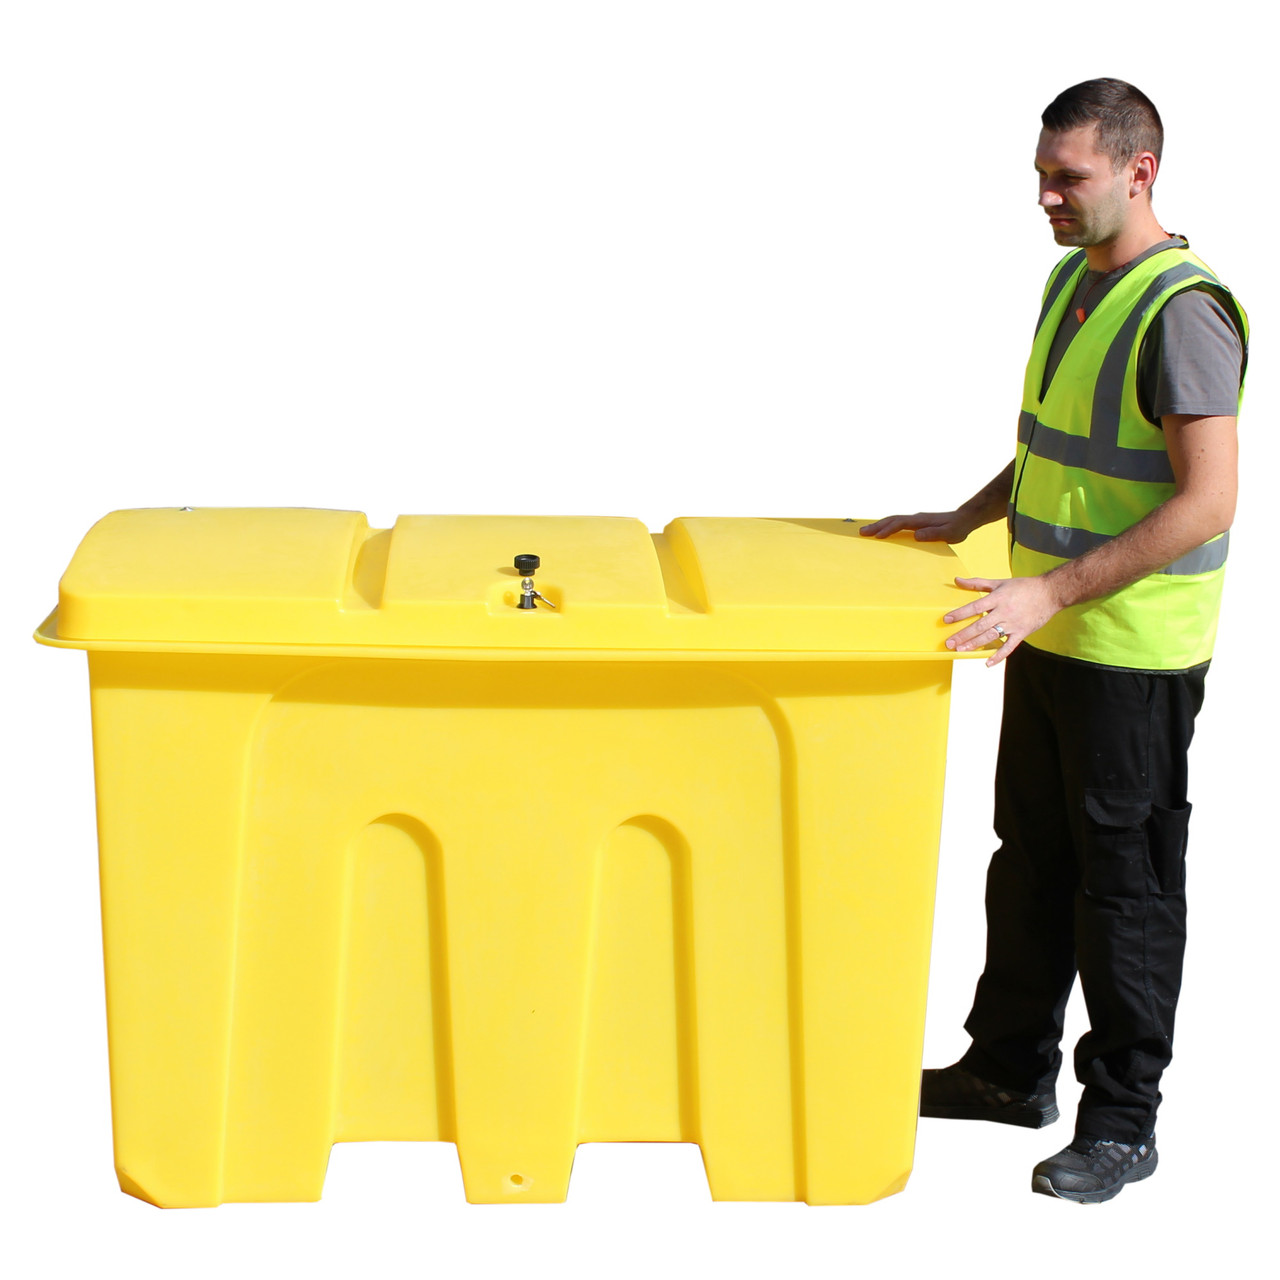 PSB2 1000ltr General Storage Container Bin